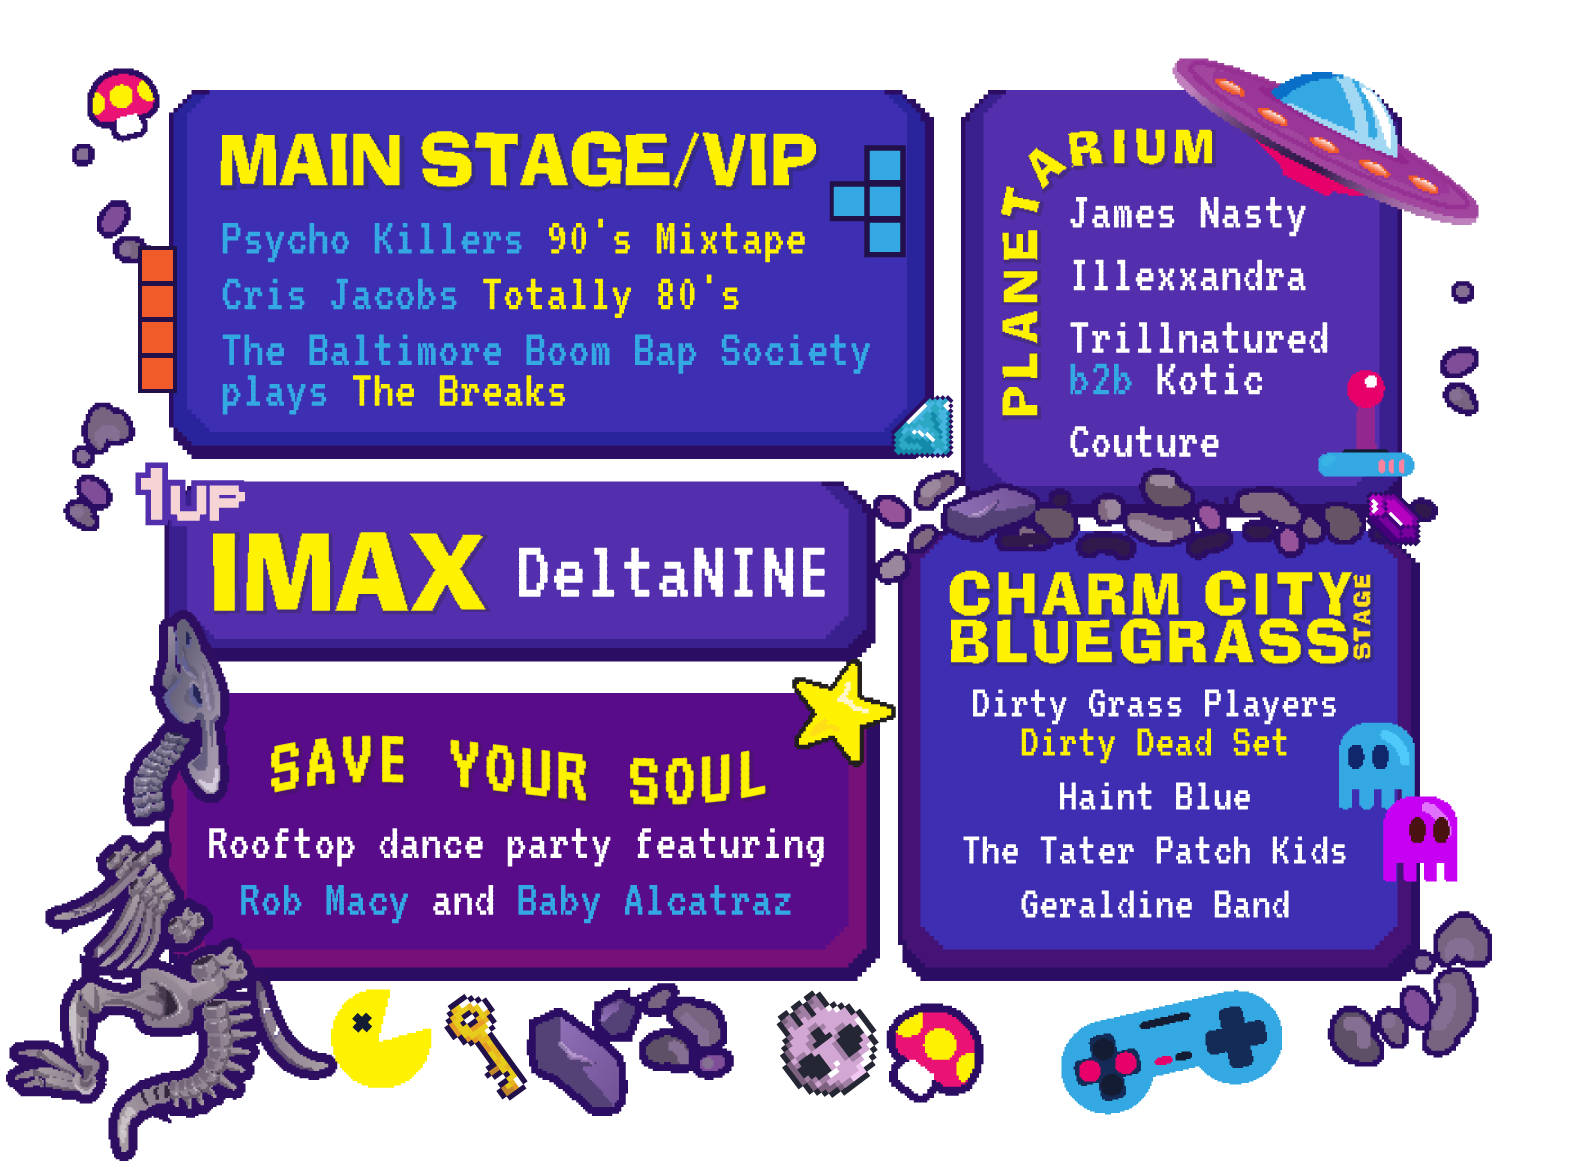 Over 5 stages featuring Psycho Killers' 90s Mixtape, Cris Jacobs Totally 80s, The Baltimore Boom Bap Society, DeltaNINE, James Nasty, Illexxandra, Trillnatured b2b Kotic, Couture, Save your Soul rooftop dance party featuring Rob Macy and Baby Alcatraz, Dirty Grass Players, Haint Blue, The Tater Patch Kids, and Geraldine Band